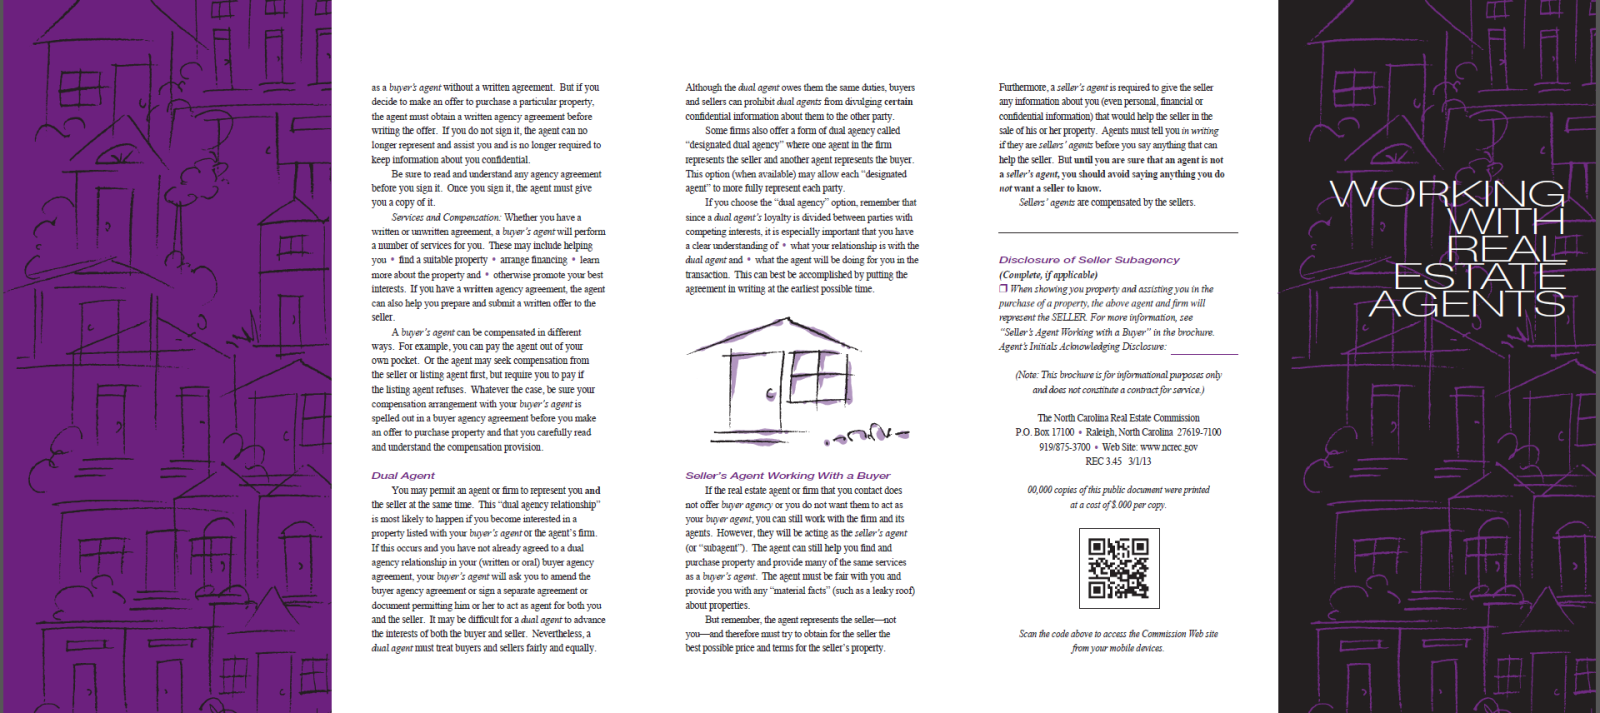 Working With Real Estate Agents Brochure